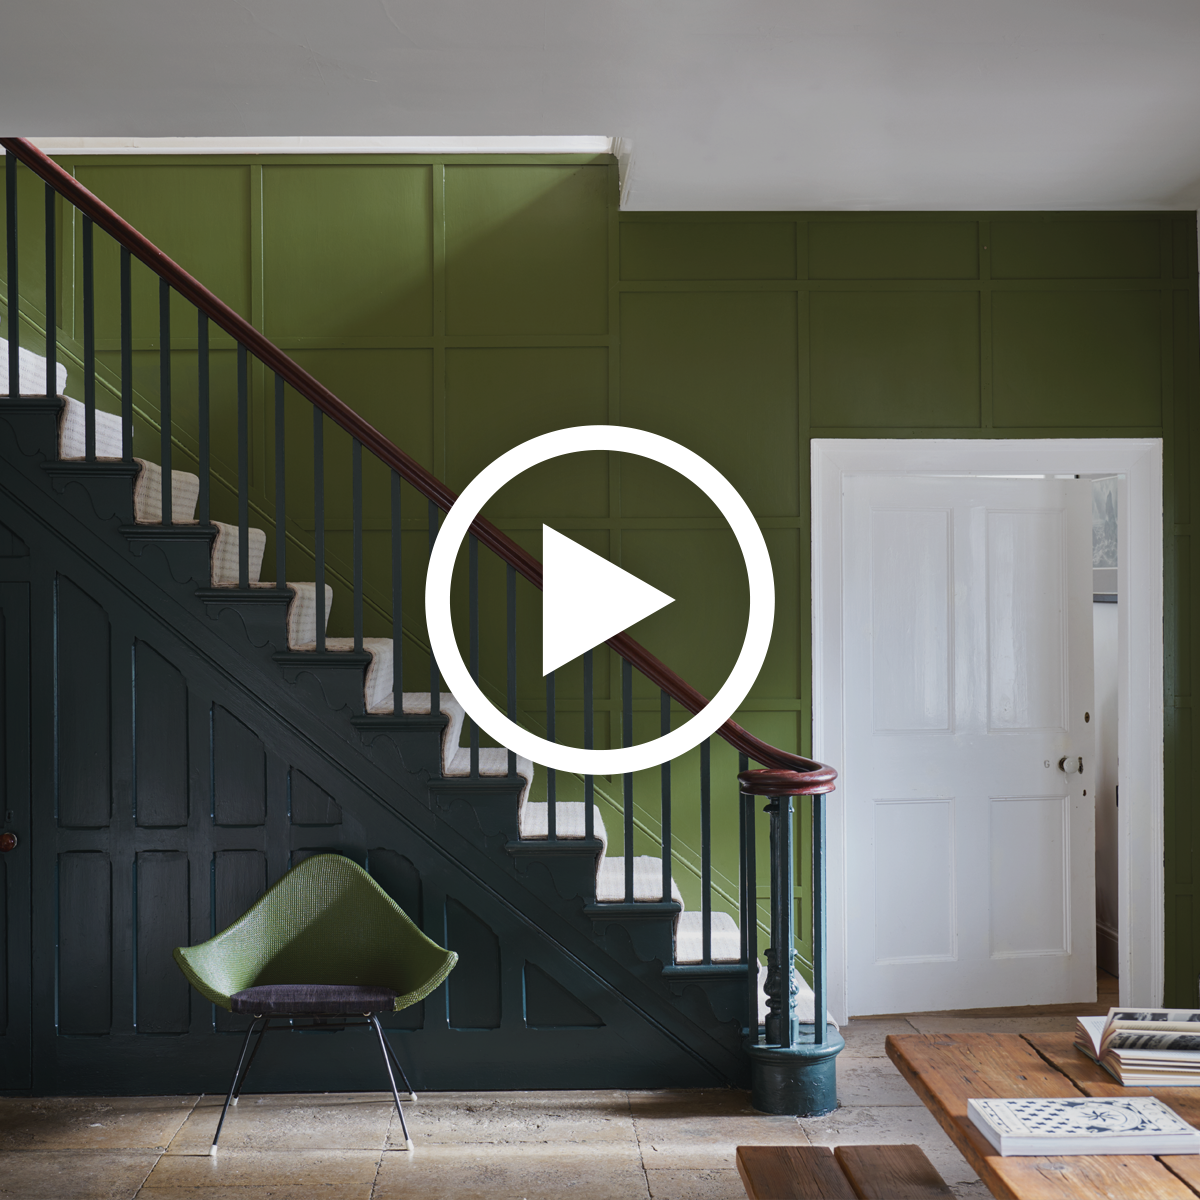 At Home With Farrow & Ball Colour Consultancy: Episode 2